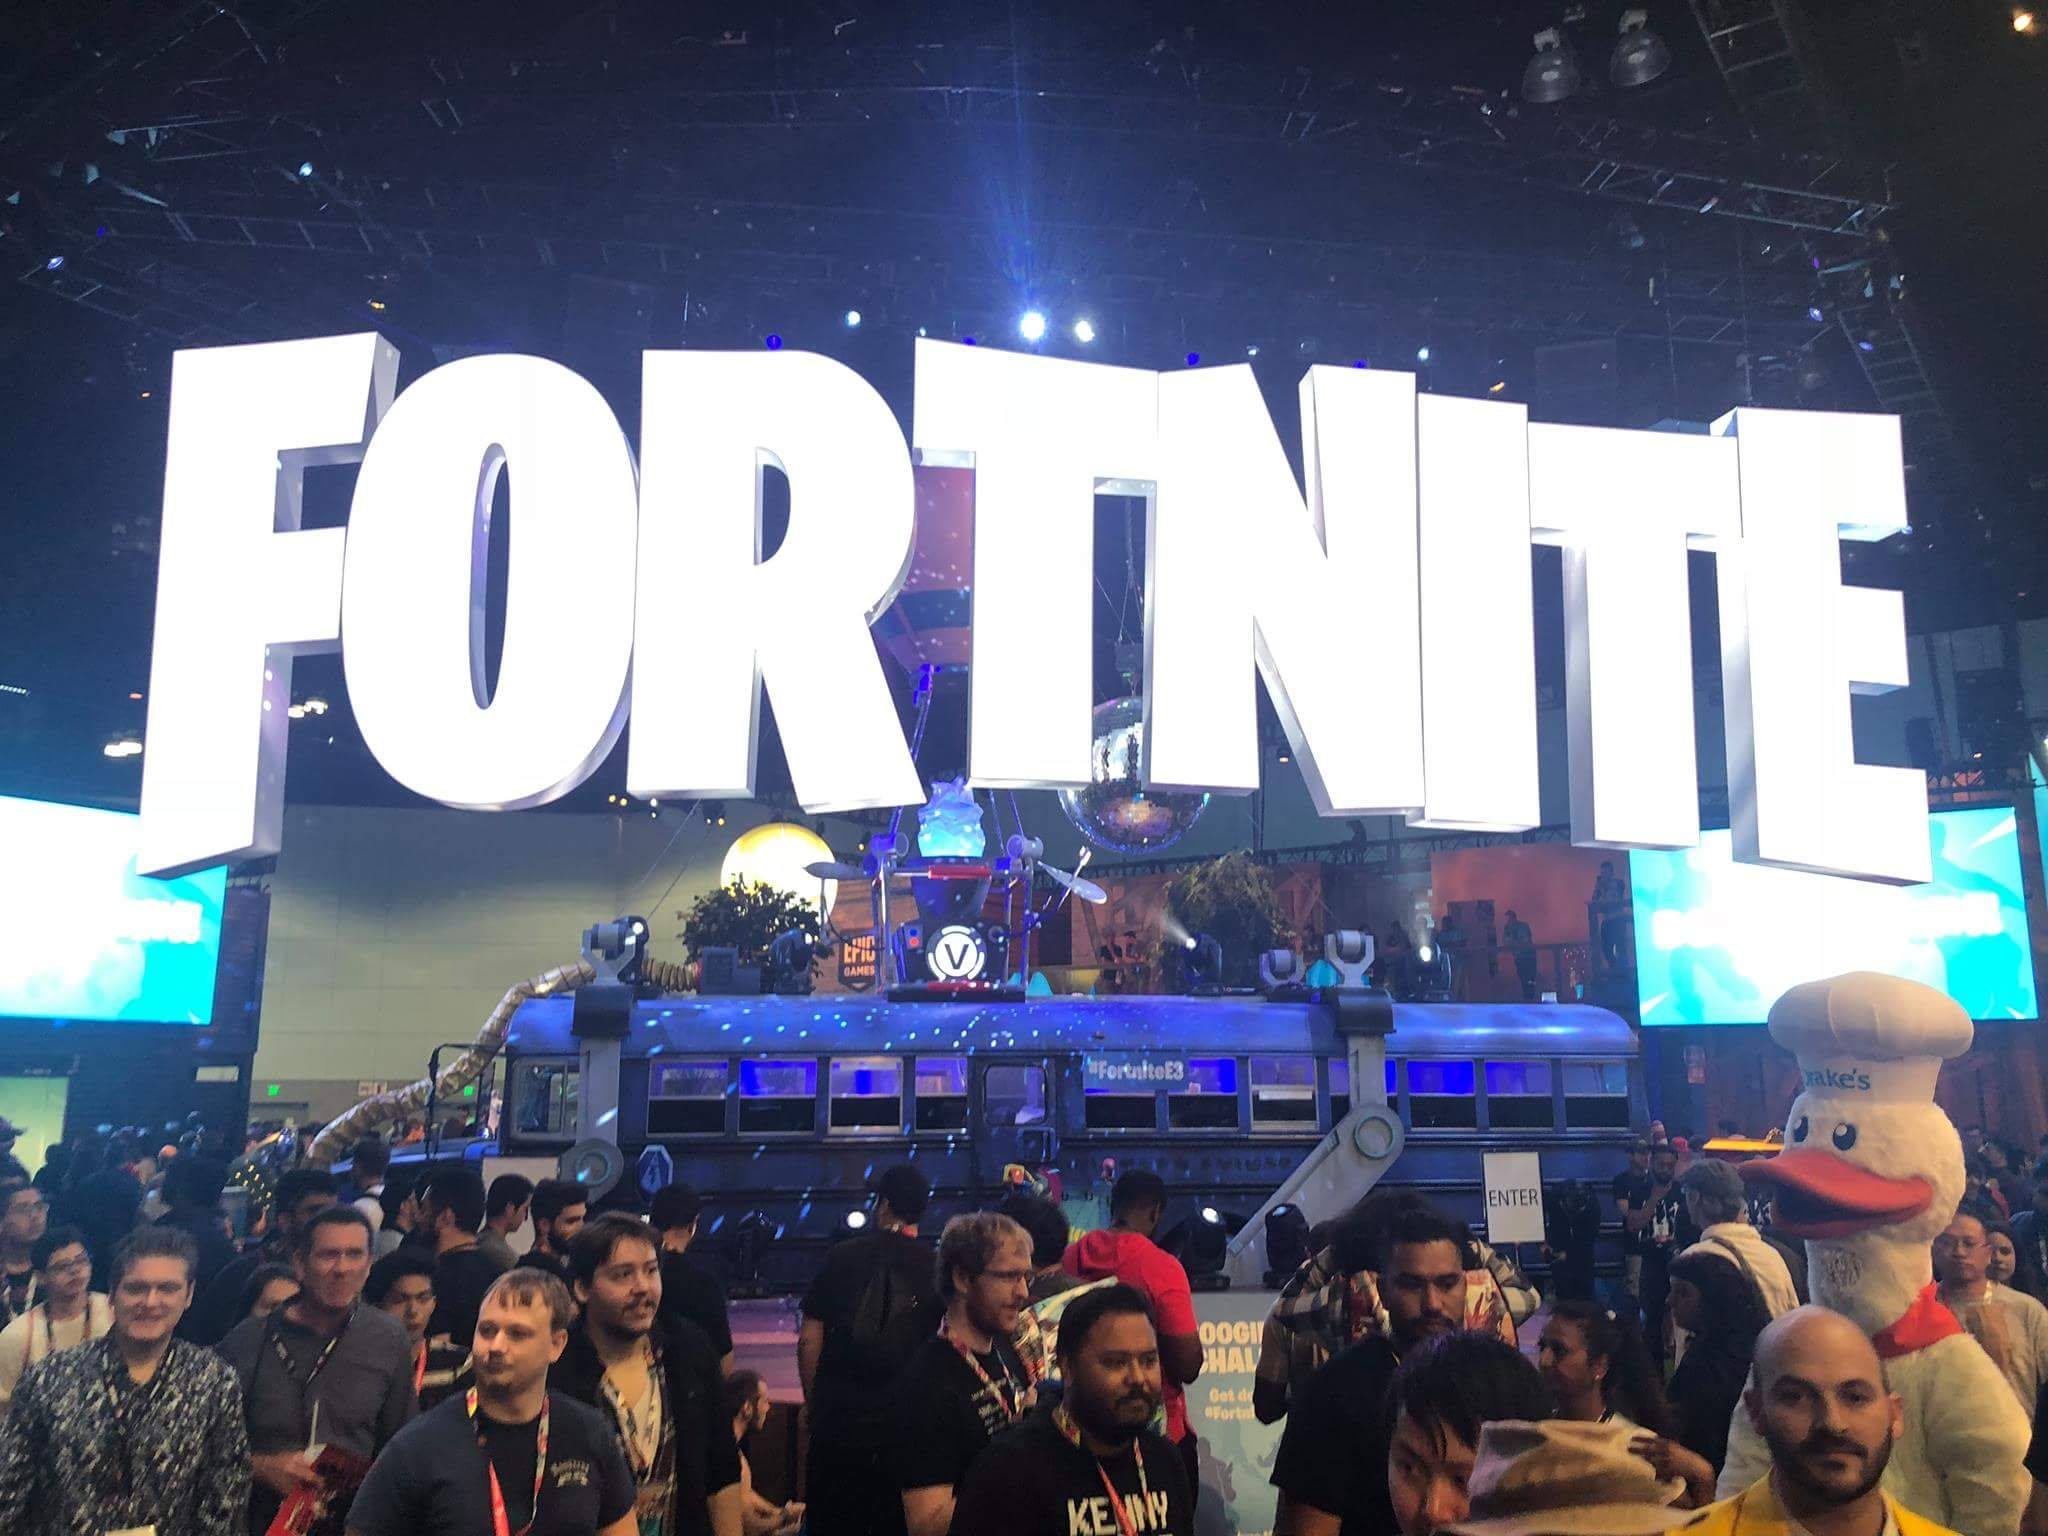 E3 made a children's play area for parents who attend E3